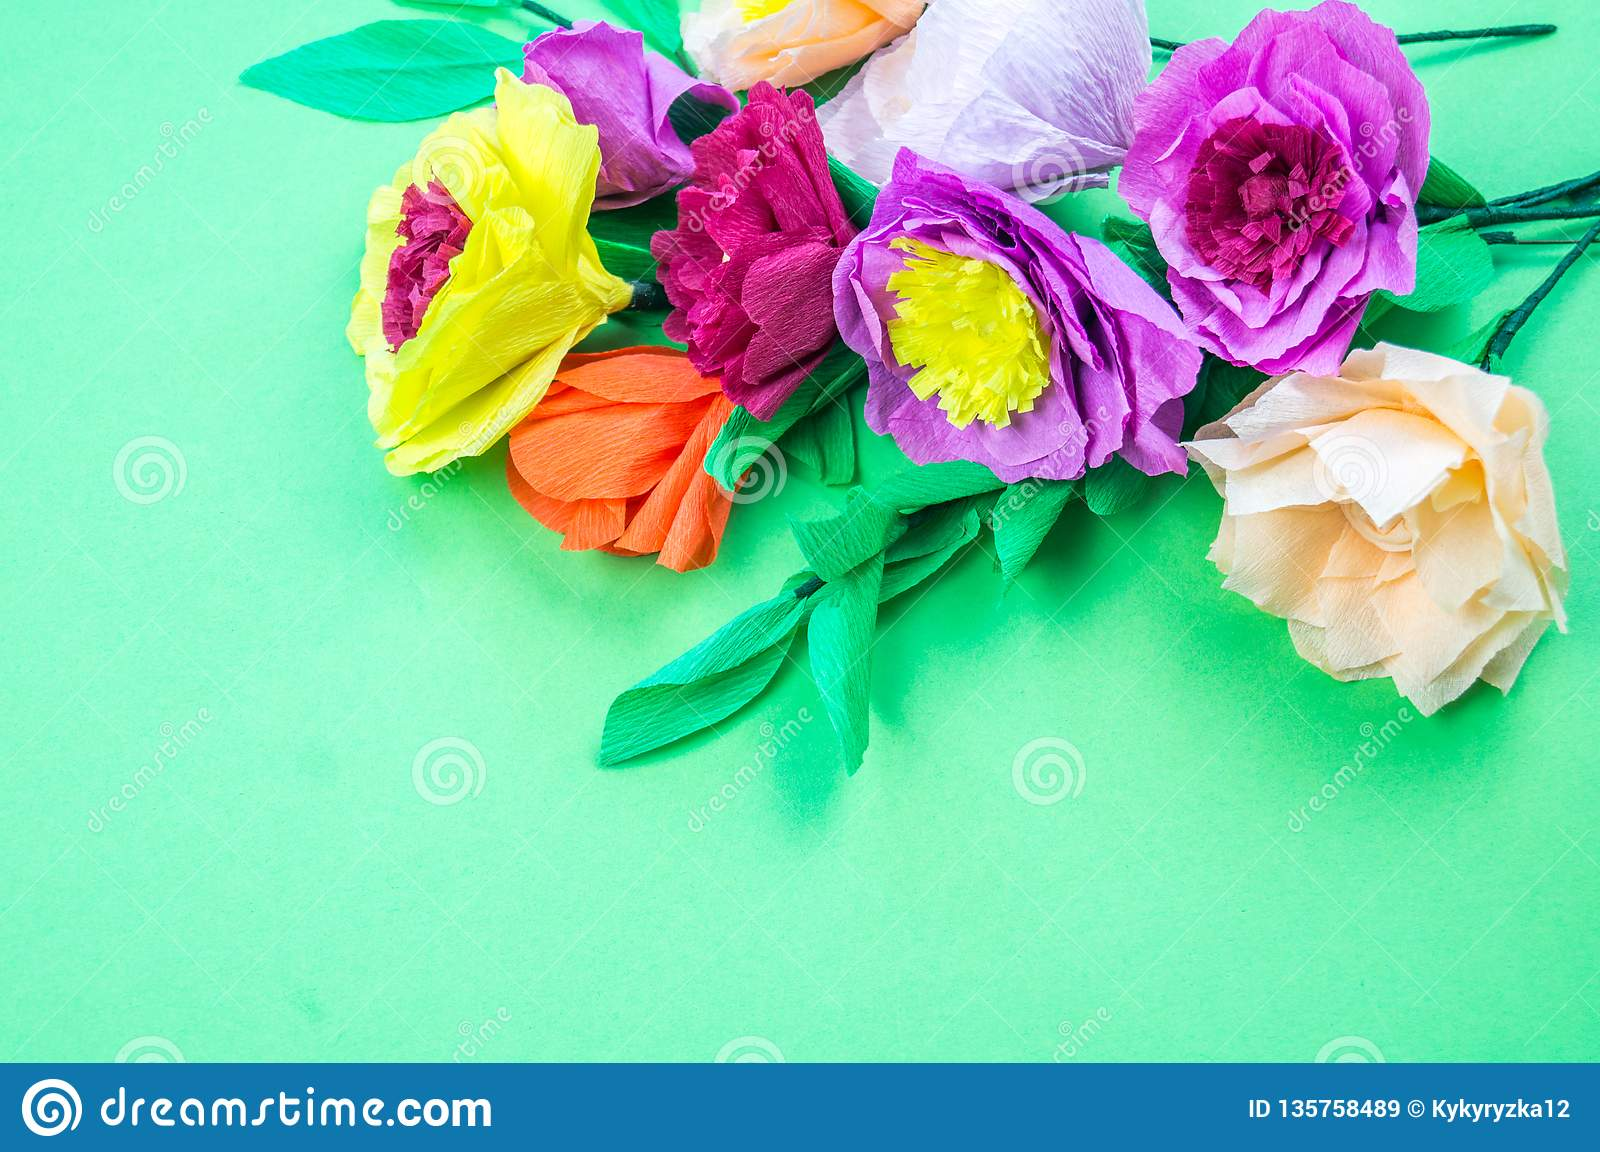 Tools Making Crepe Paper Flowers Green Background Stock Image